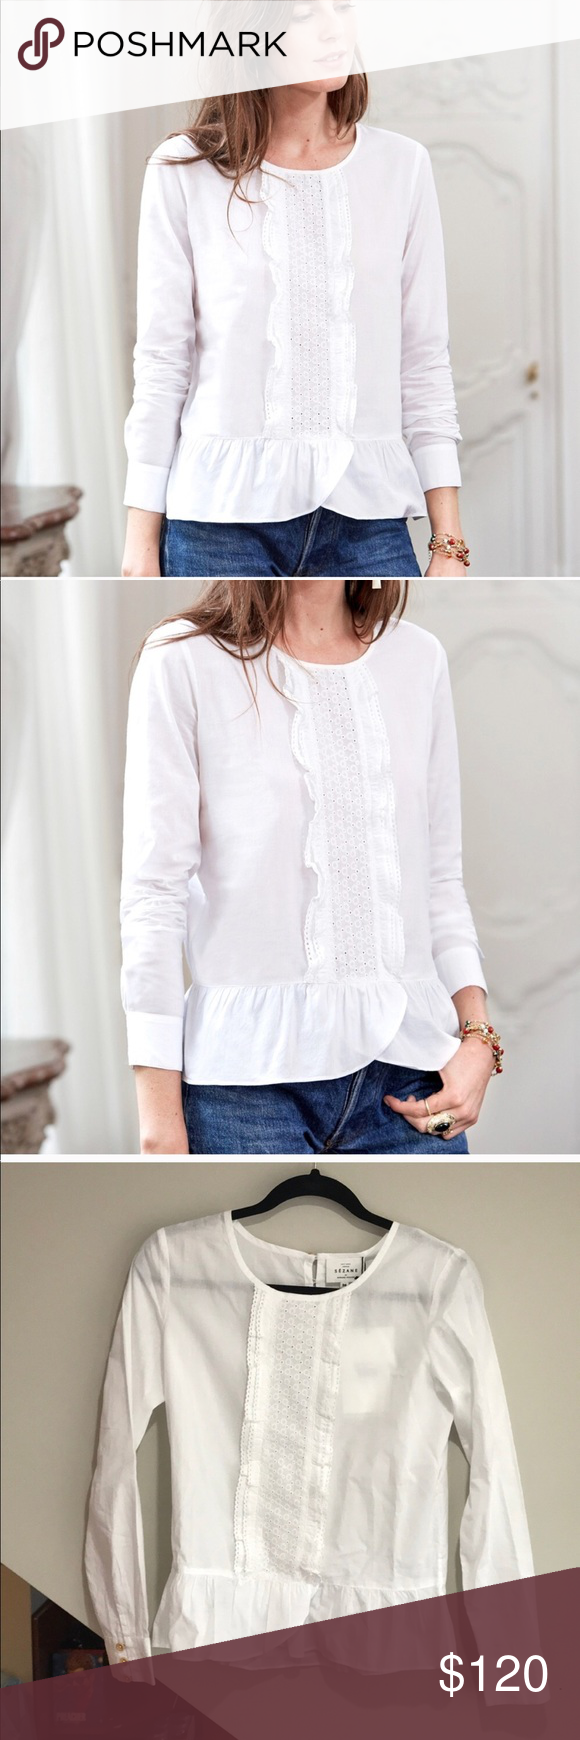 862aaf2b9bd01c Sezane Diana Blouse NWT and sold out, price is firm! This crisp white blouse